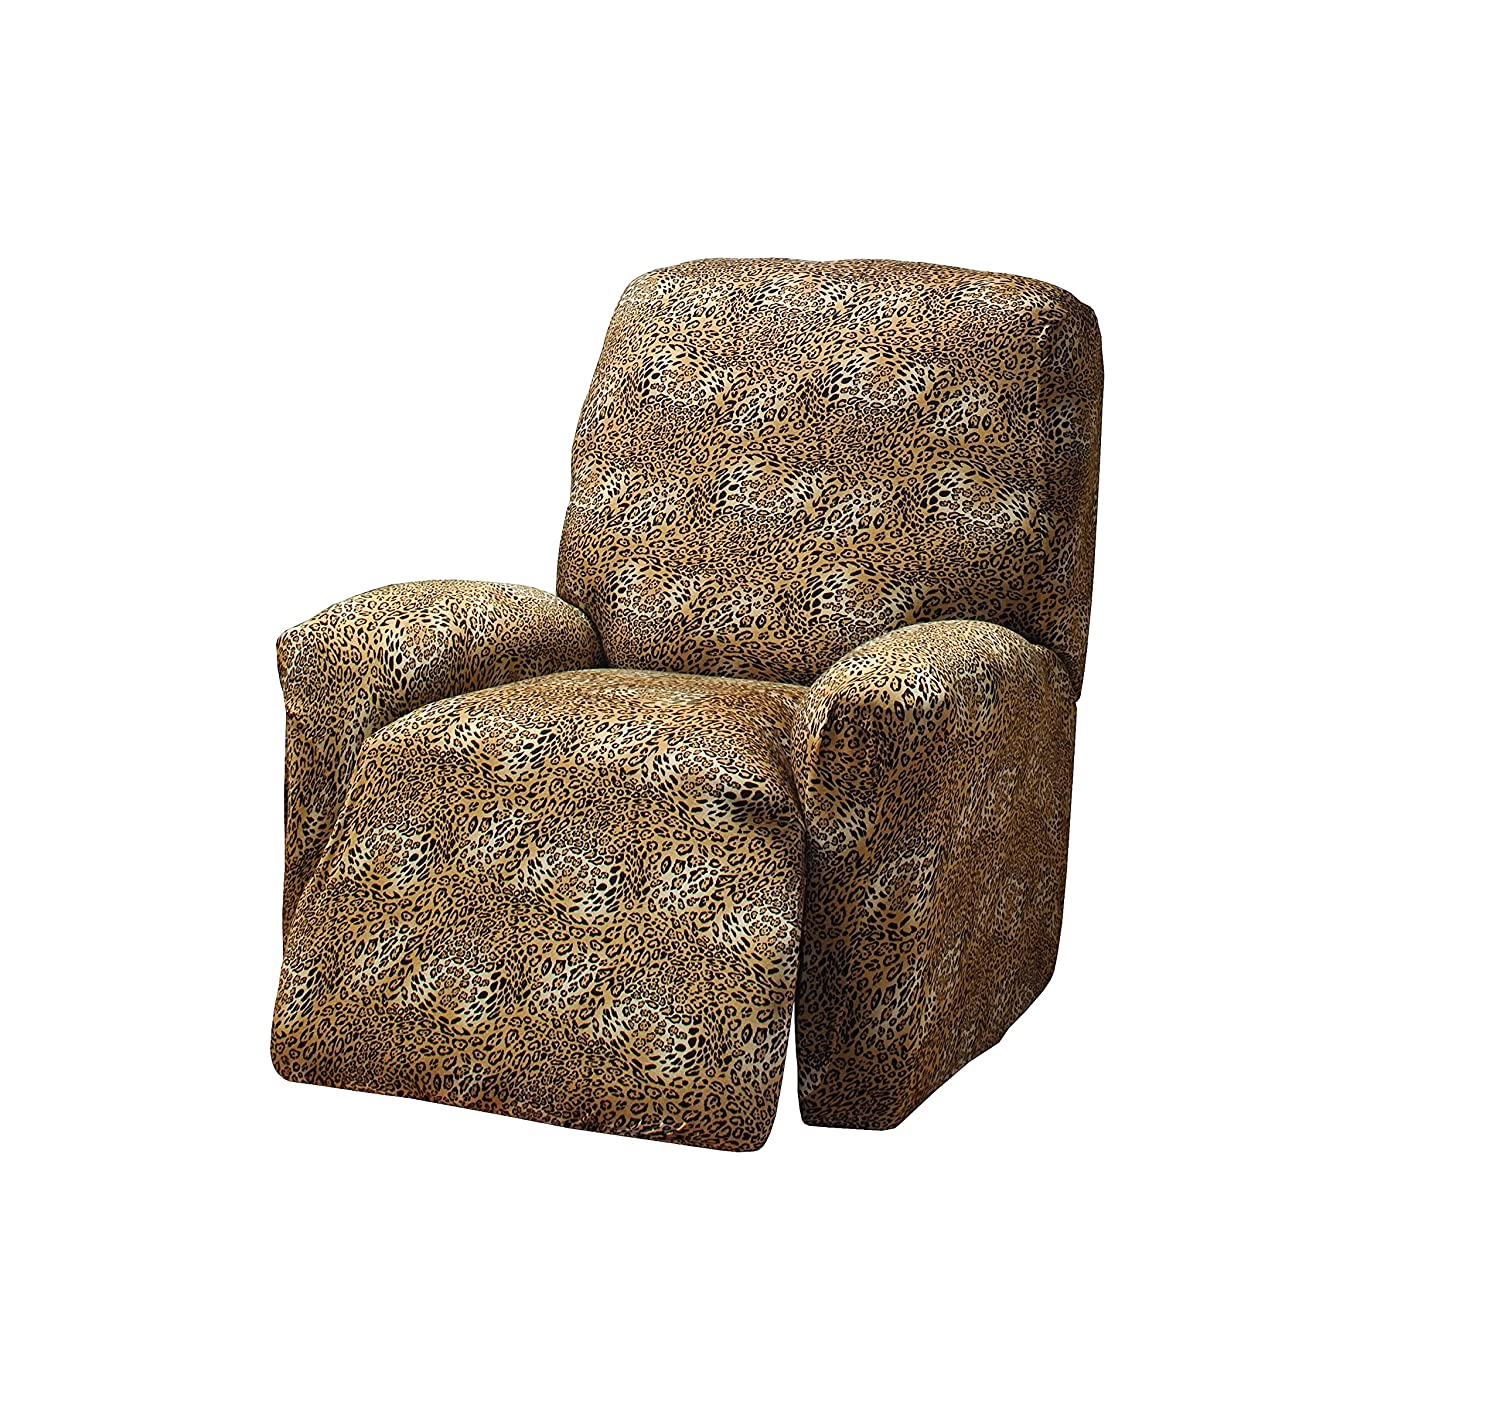 Madison Stretch Jersey Leopard Large Recliner Slipcover, Geometric MADISON INDUSTRIES INC. us home MBPT0